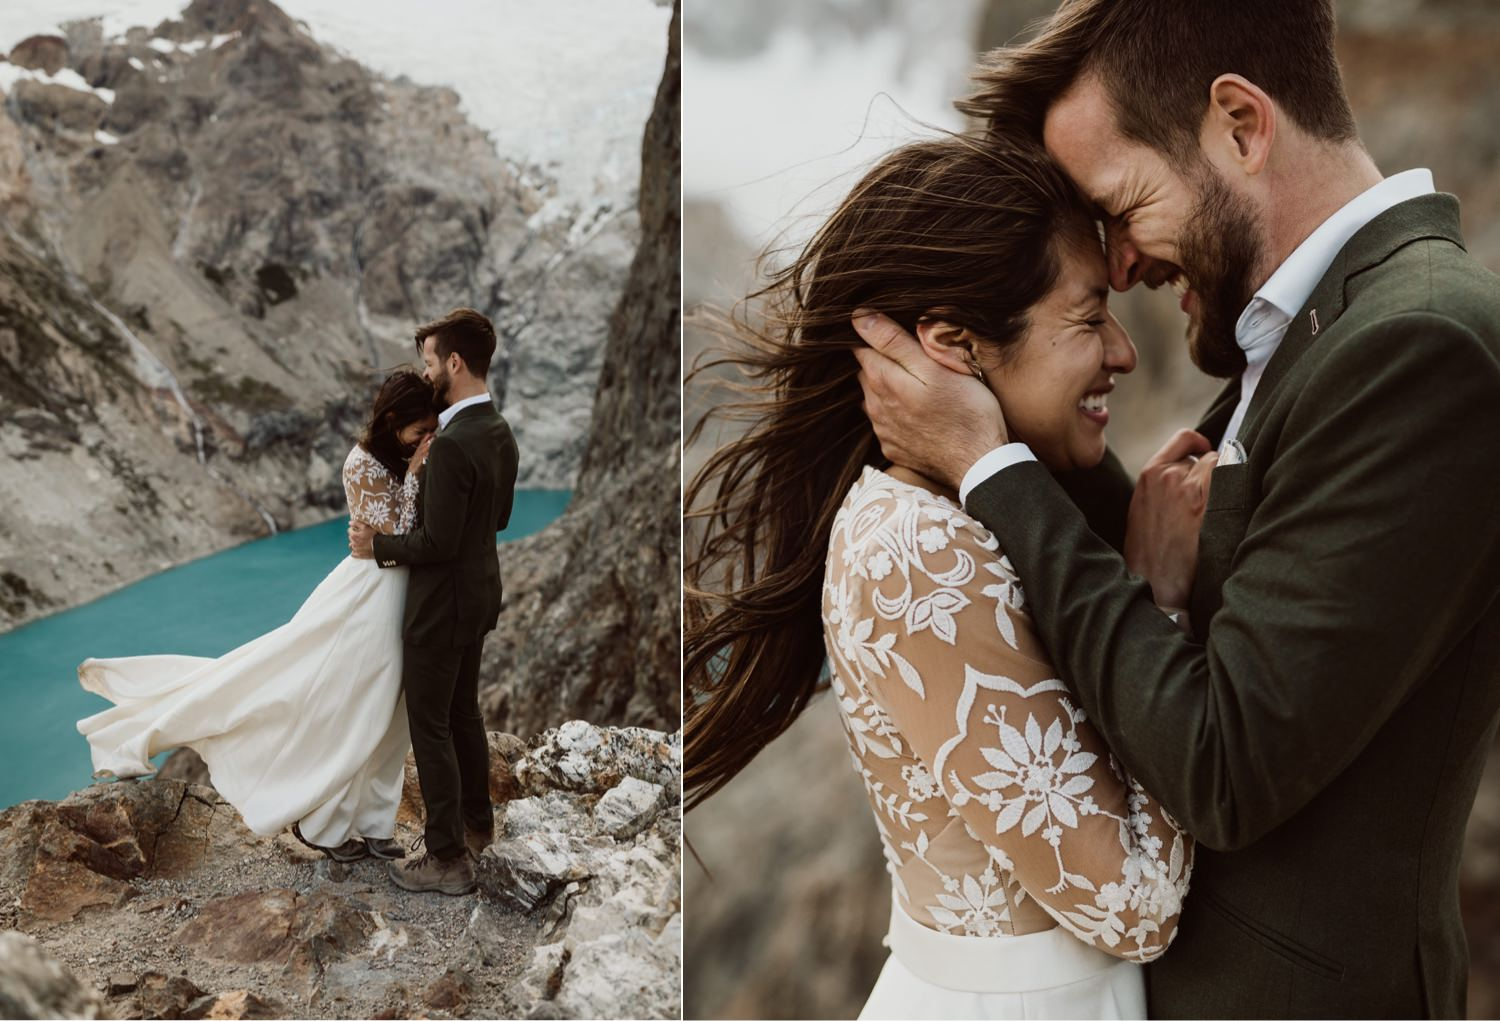 patagonia-argentina-adventure-wedding-session-44_patagonia-argentina-adventure-wedding-session-46.jpg